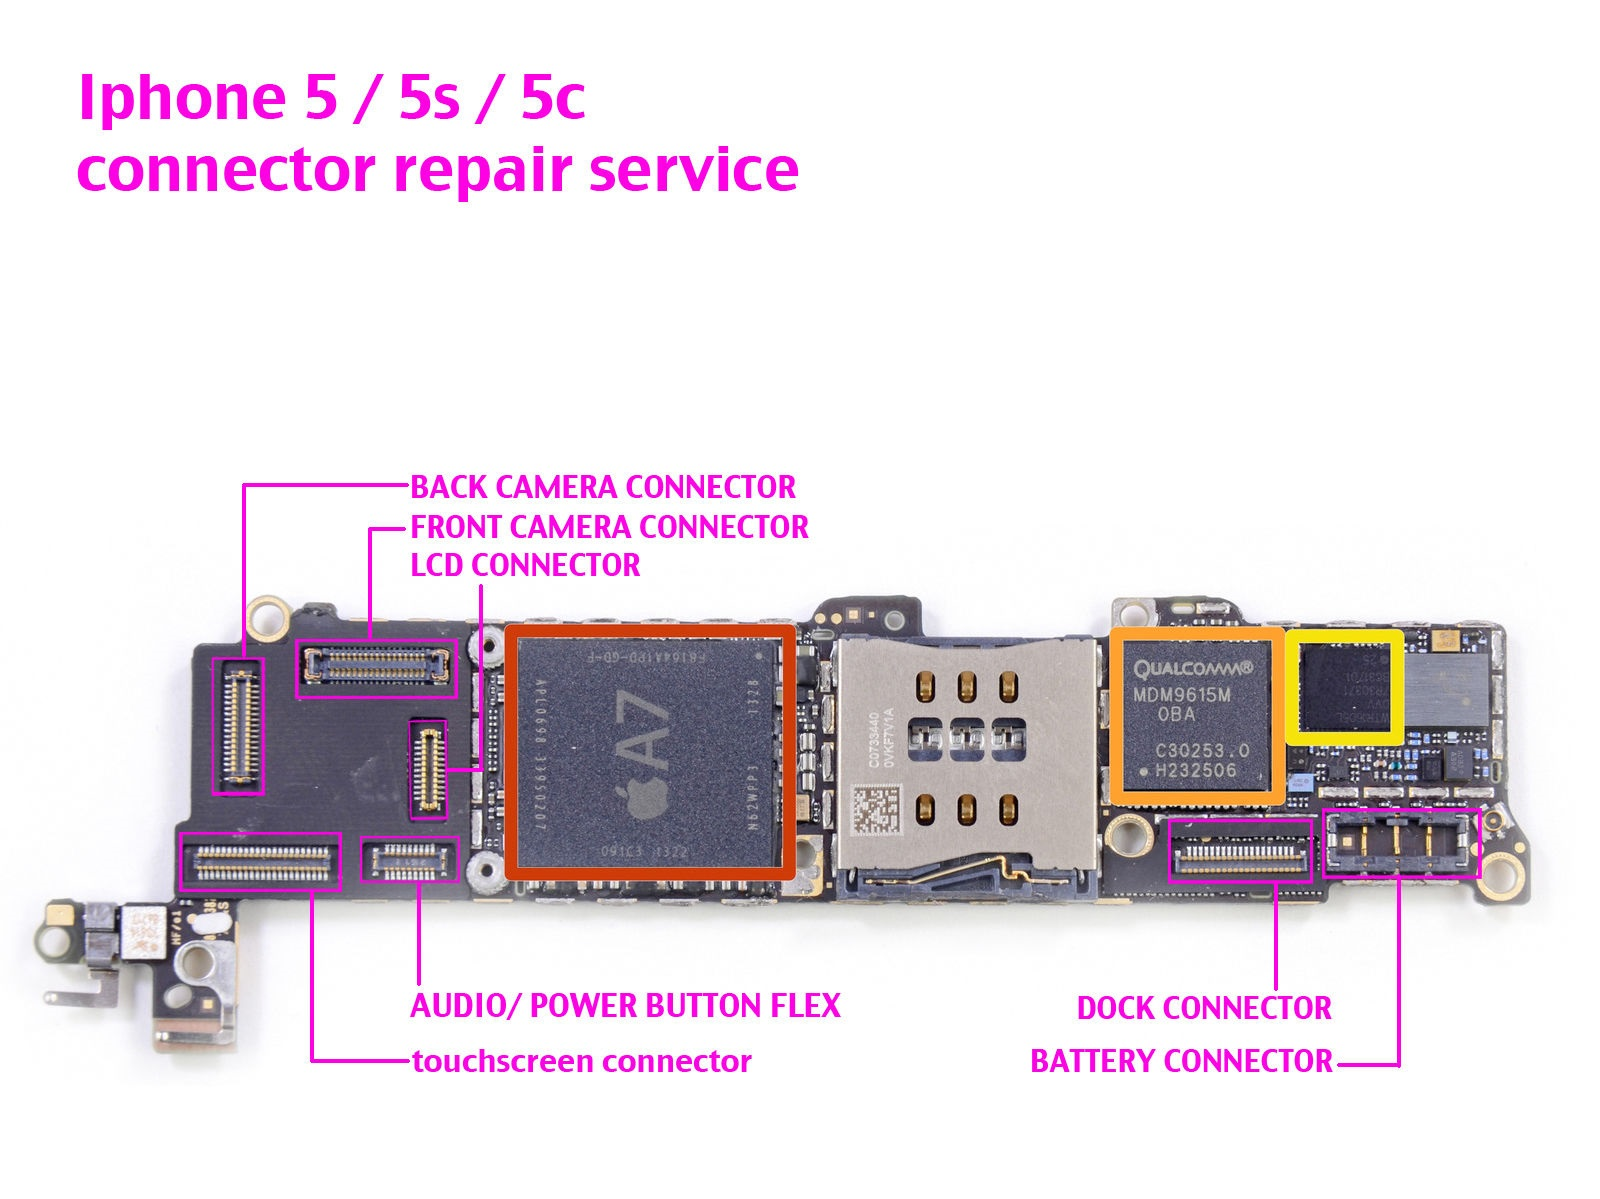 iphone 5 5s 5c se fpc connectors repair service. Black Bedroom Furniture Sets. Home Design Ideas